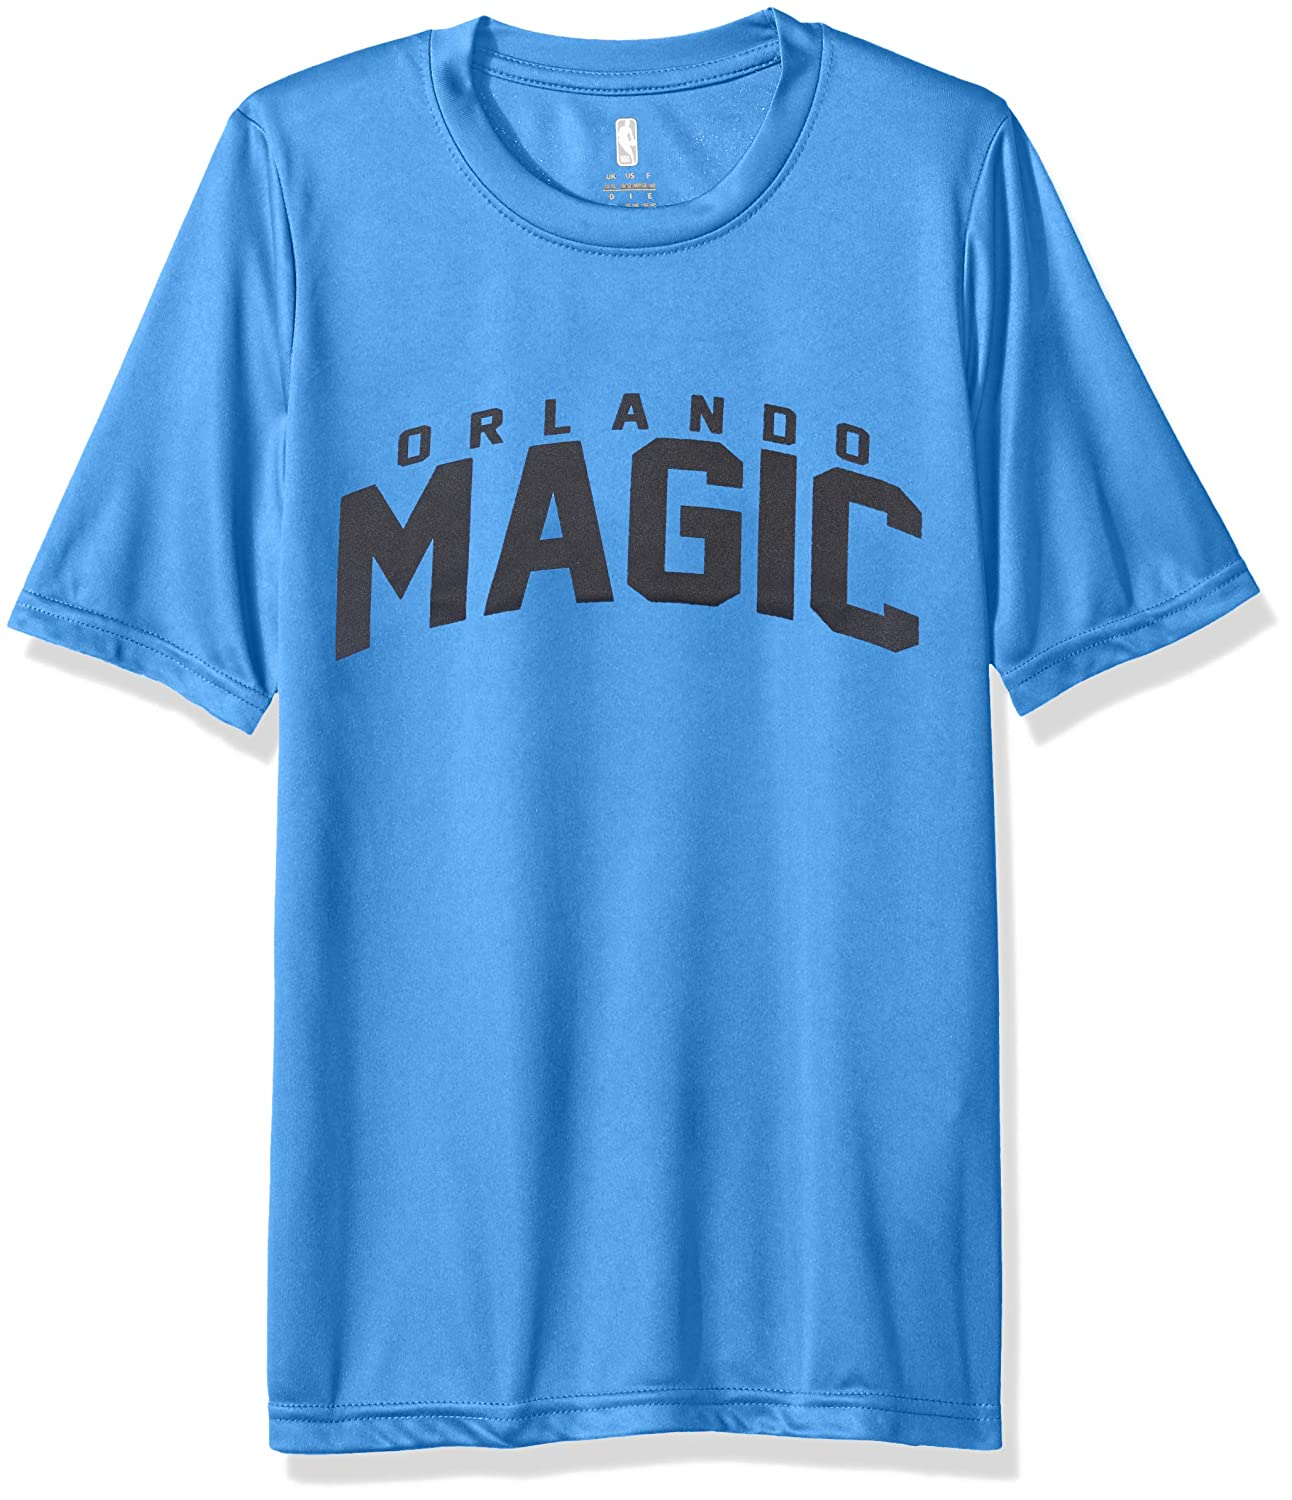 Outerstuff NBA NBA Youth Boys Orlando Magic Curved Ball Short Sleeve Performance Tee 18 Youth X-Large Strong Blue